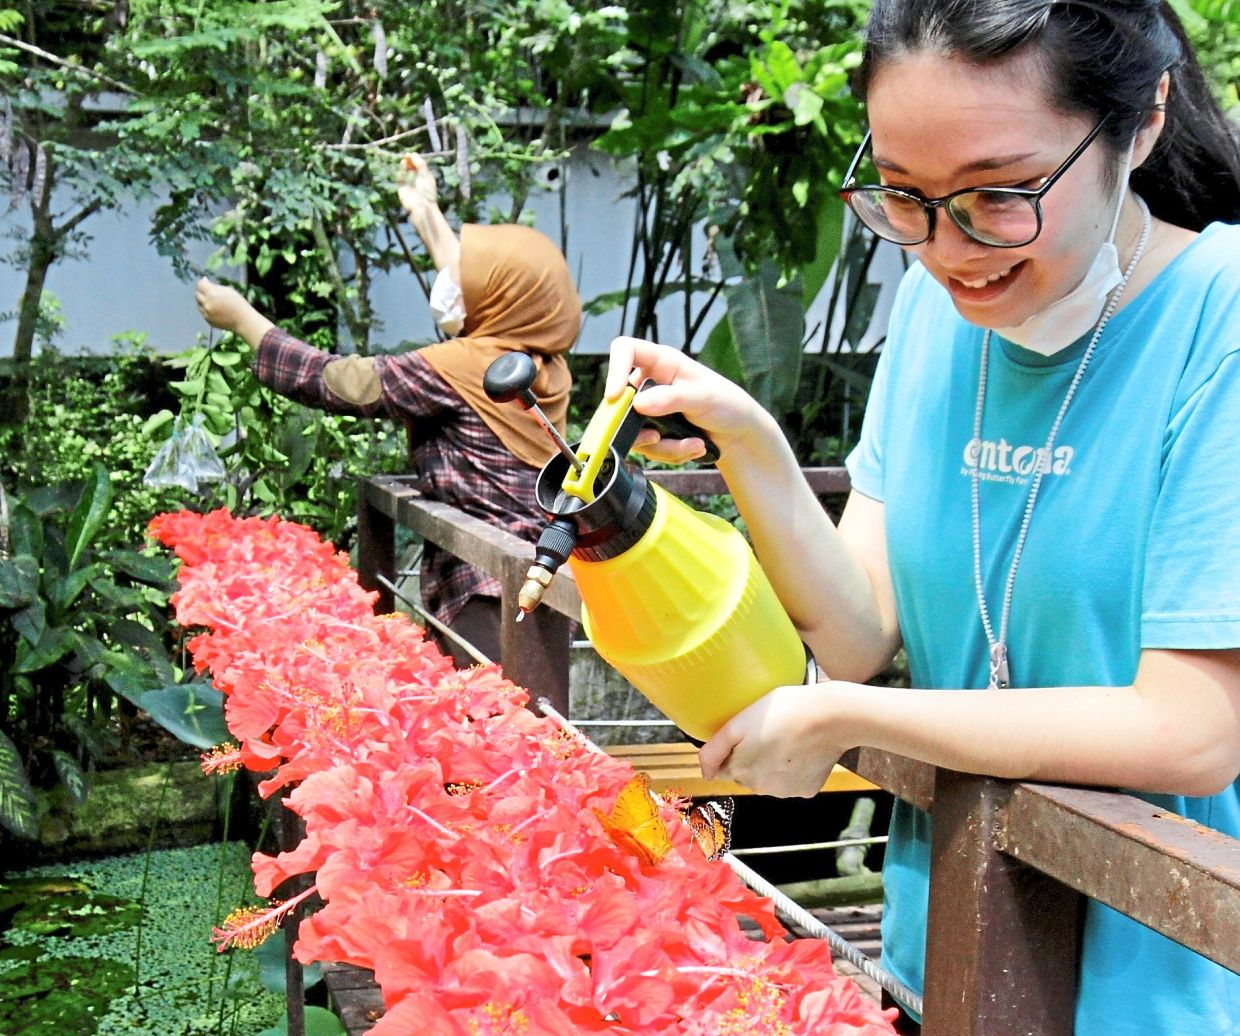 Floral duty: Entopia by Penang Butterfly Farm zoology operation senior officer Melissa Yung, 28, watering flowers at the park.